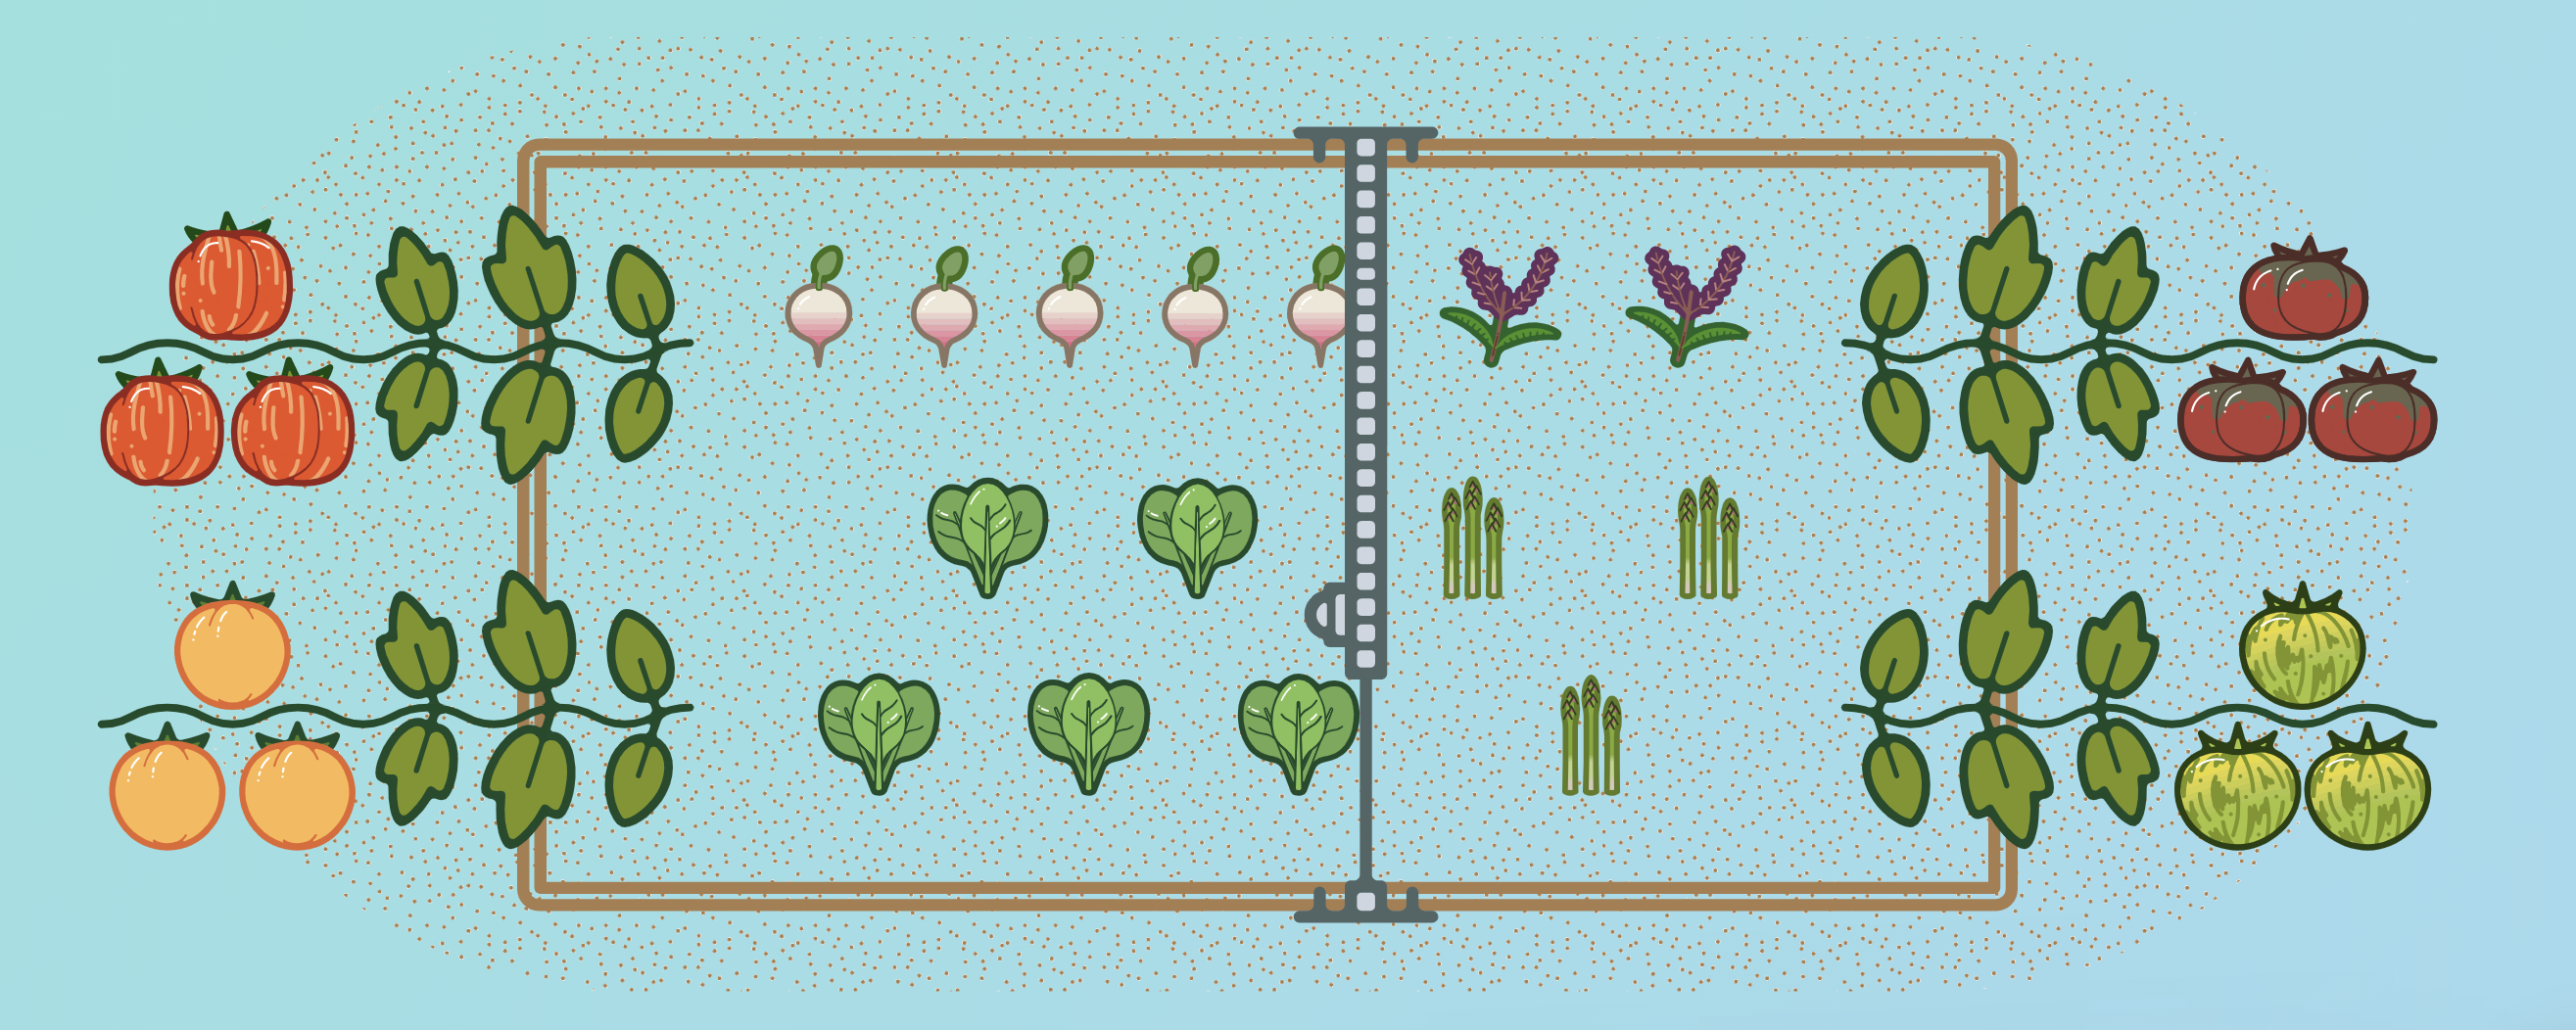 illustration of farmbot with vines at the ends of the bed